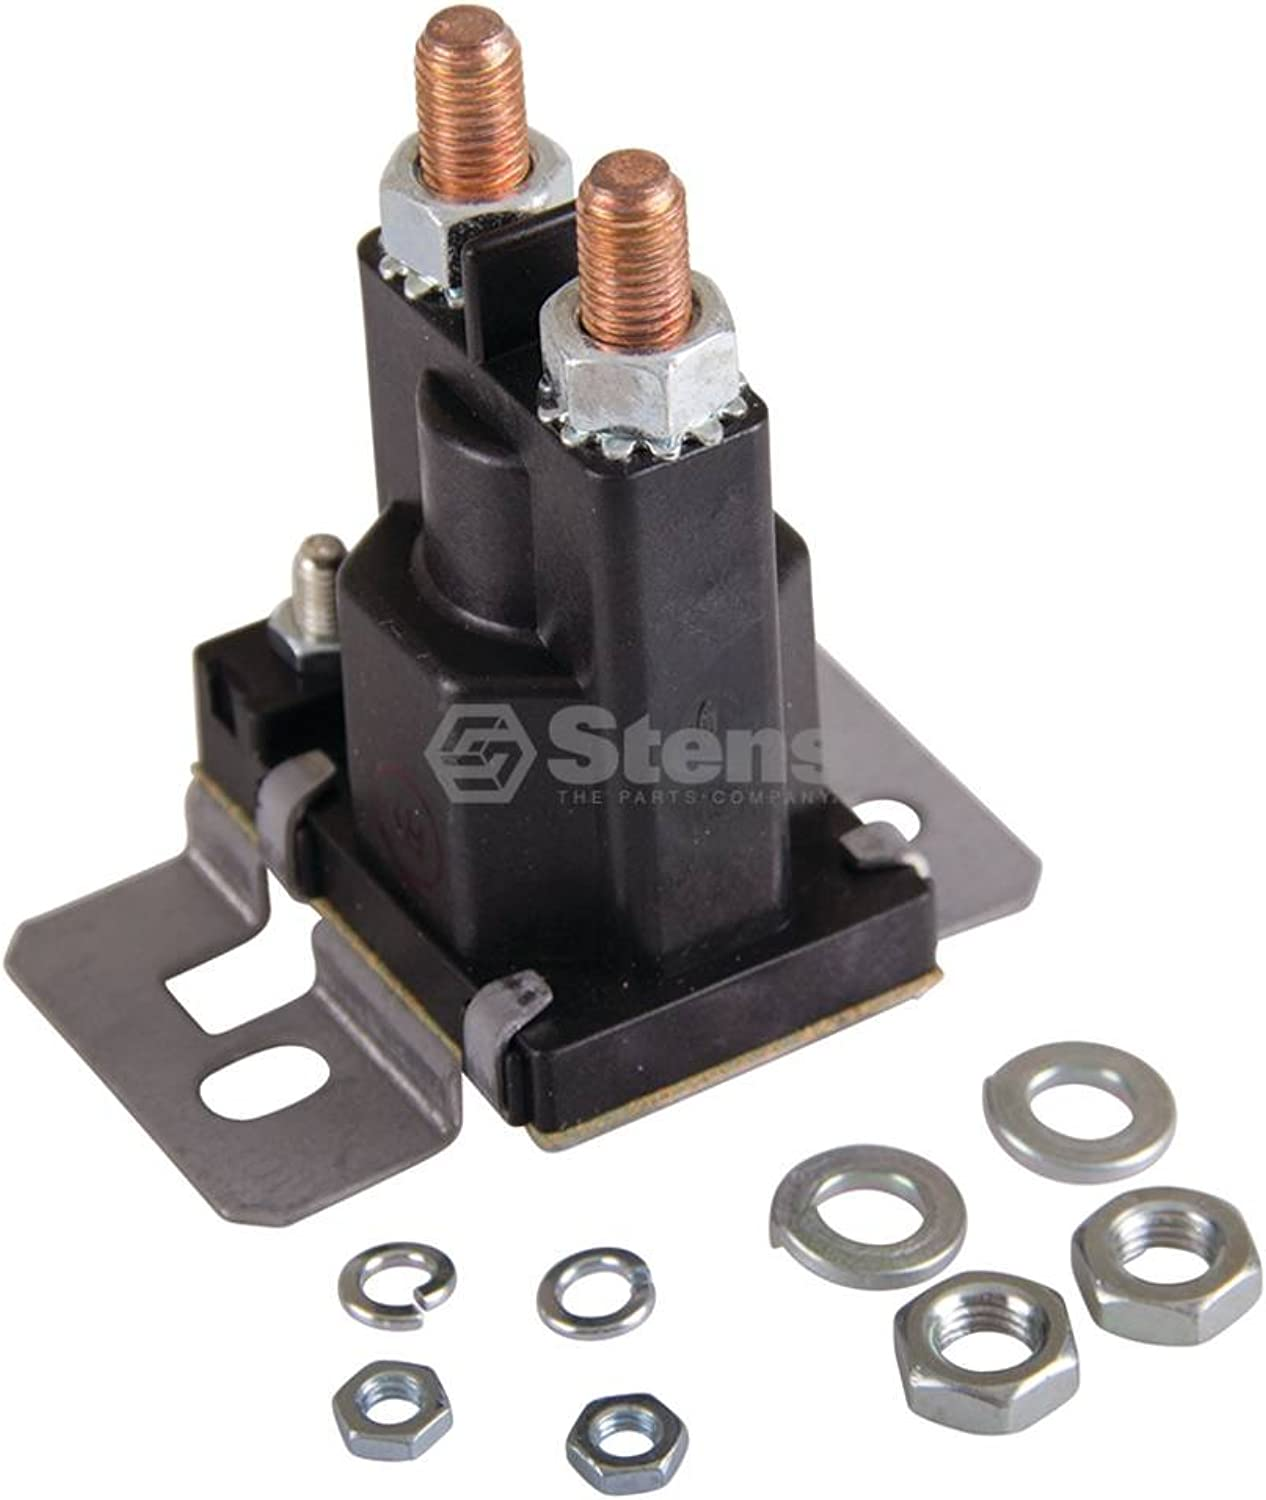 Stens 435-356 Starter Solenoid, Replaces Club Car  101975901, Fits Club Car  Ds, Electric, 1997 and Newer, 120 Series Tower Style, 4 Terminals, 36V